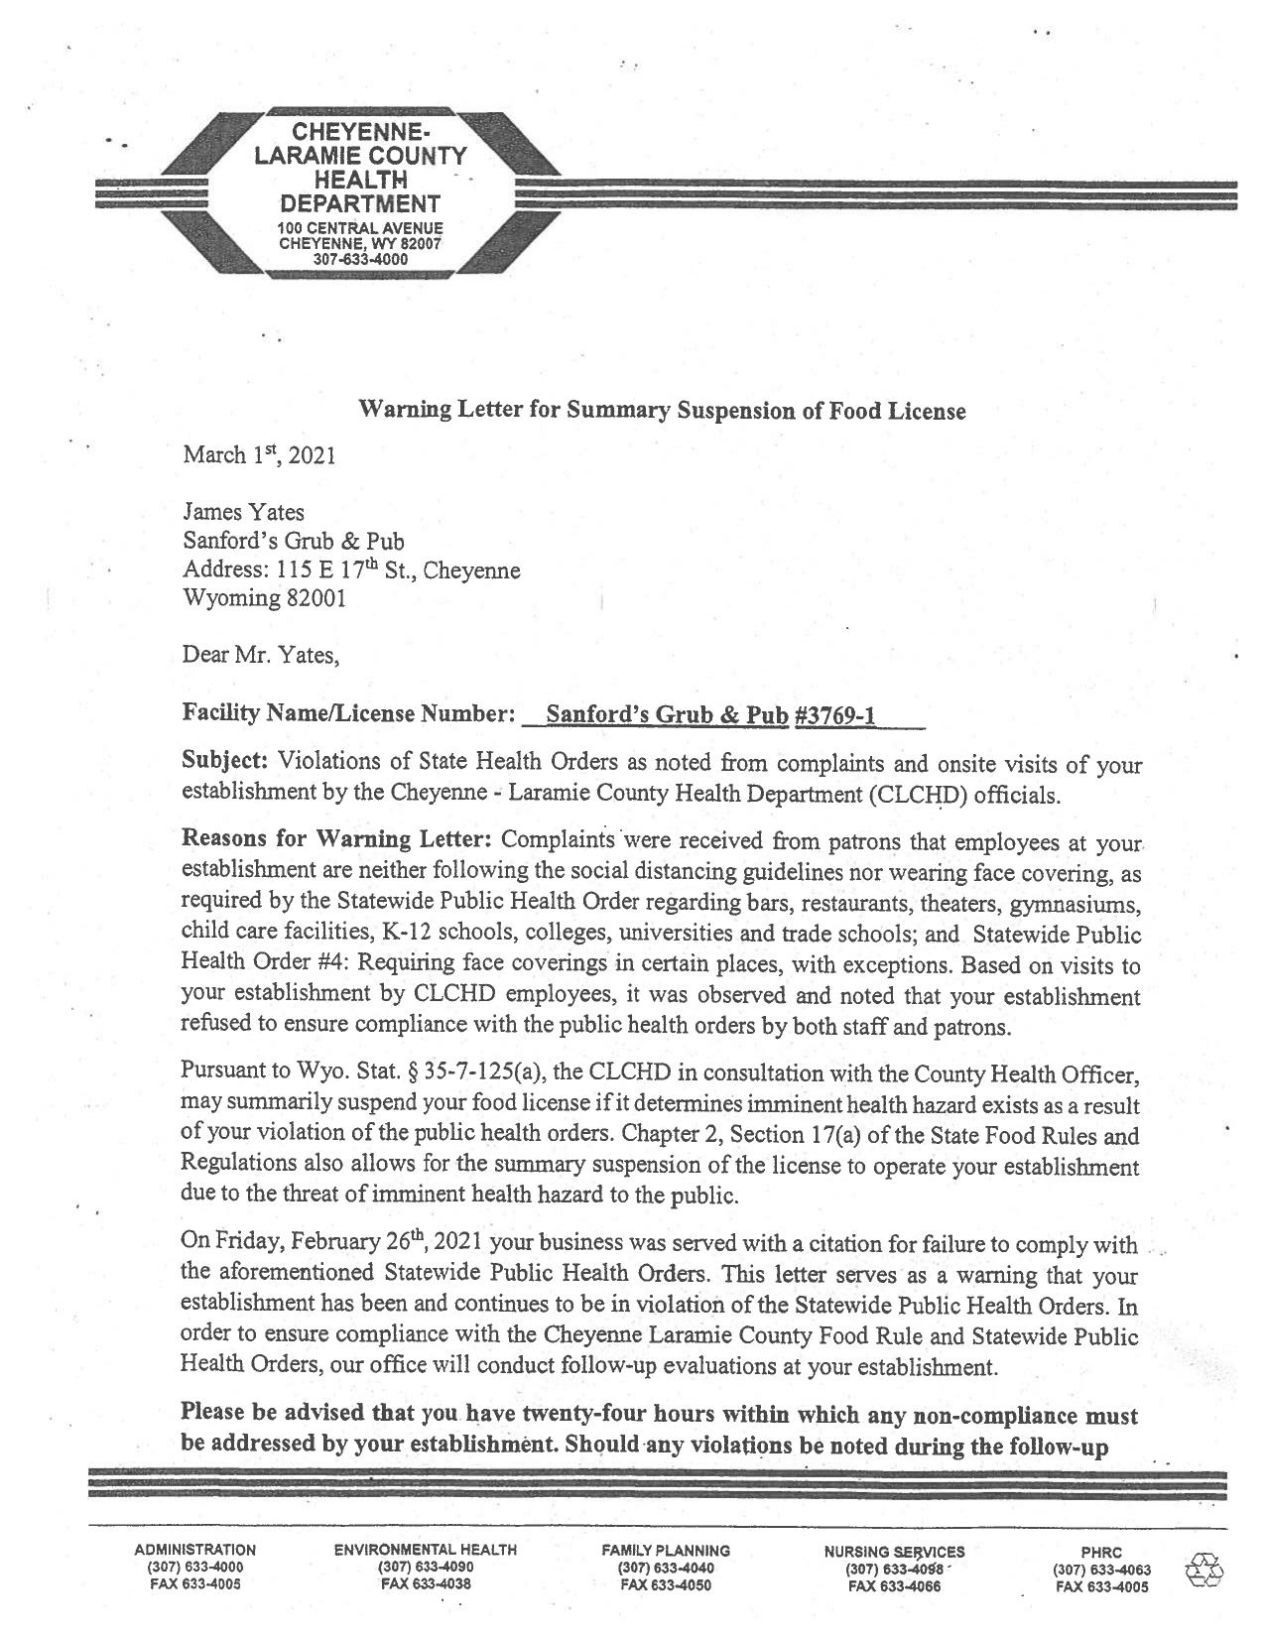 Warning Letter from City-County Health to Sanford's